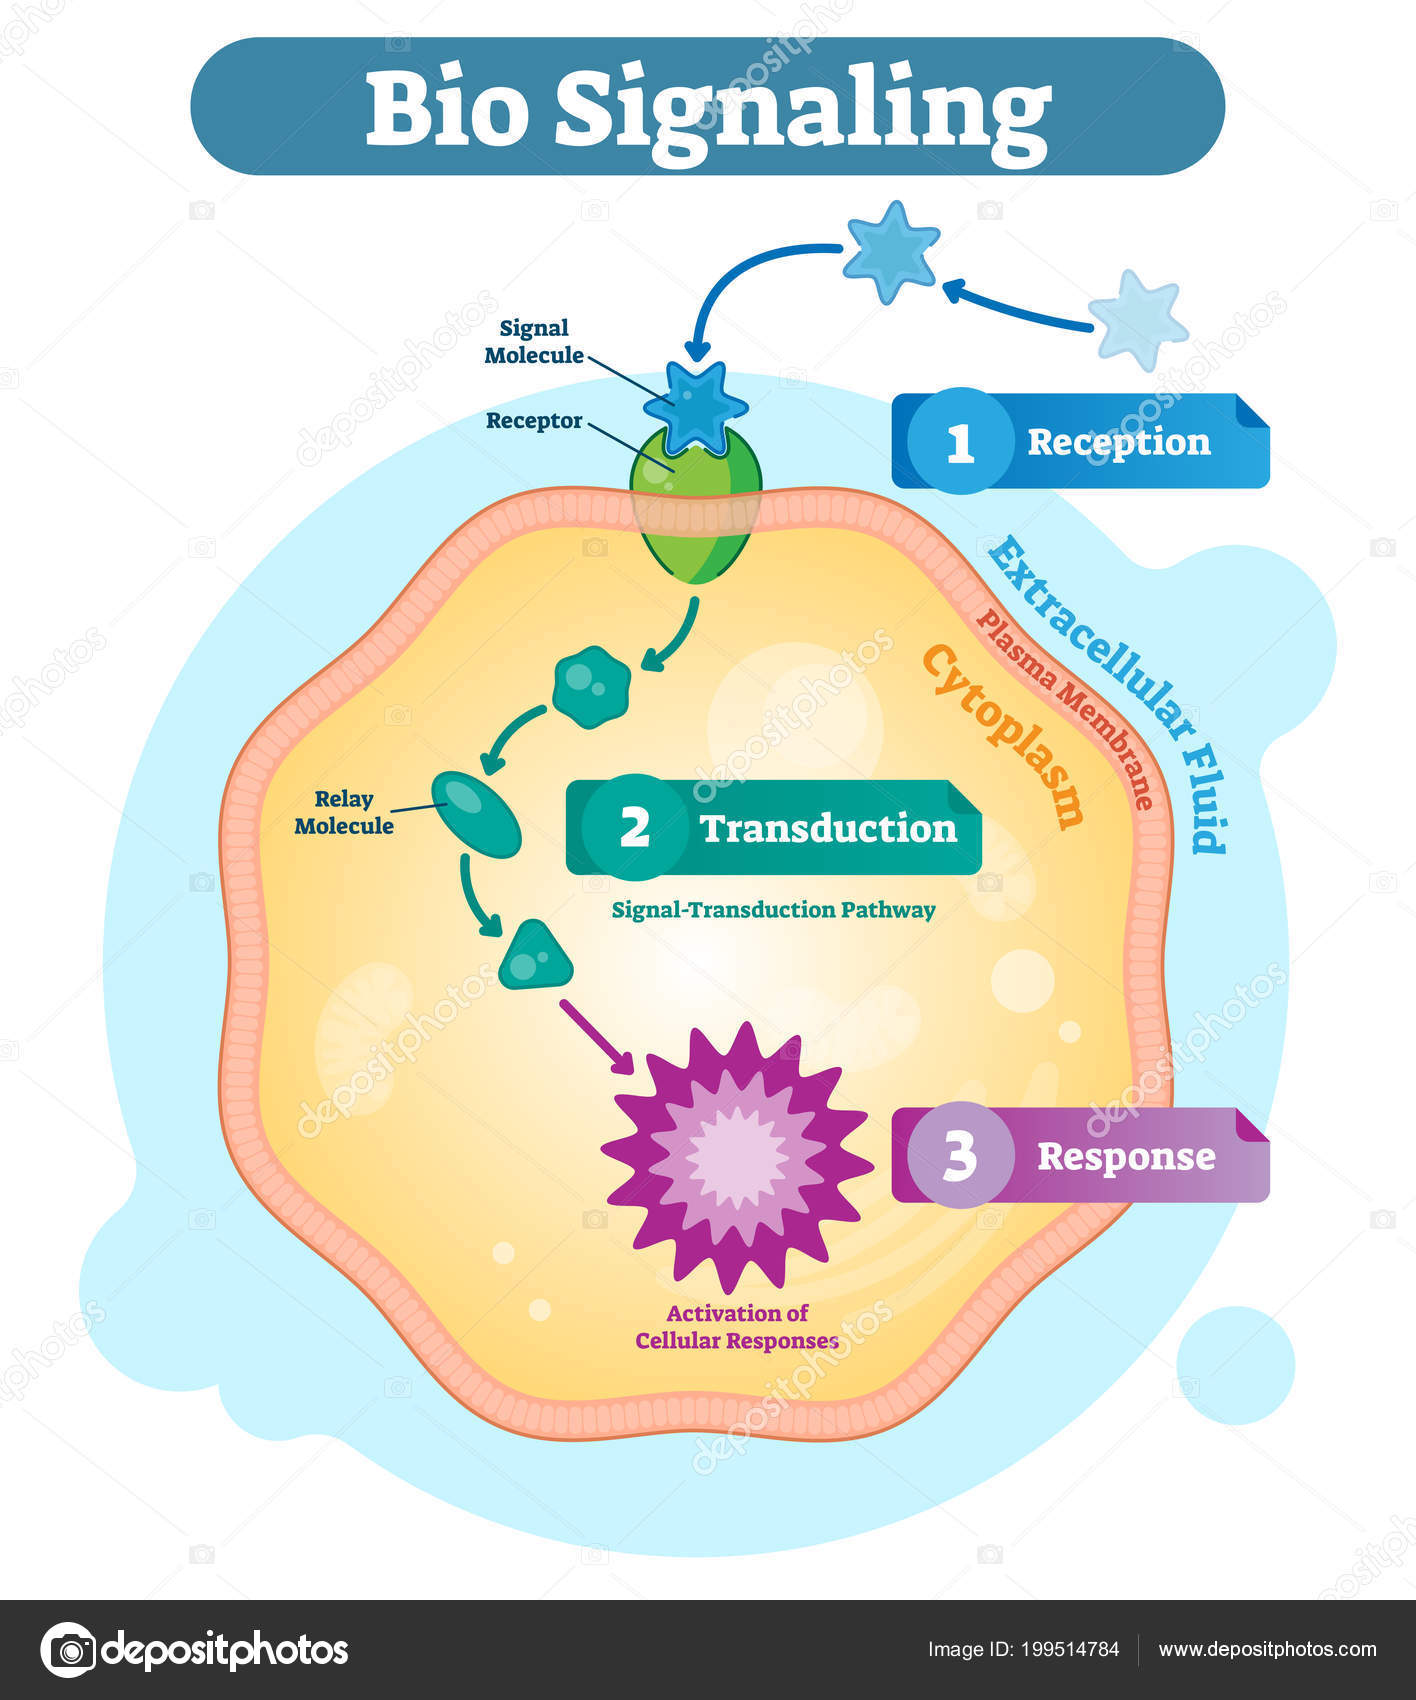 Bio signaling cell communication network system micro biological bio signaling cell communication network system micro biological anatomy labeled diagram vector illustration with receptor transduction and response ccuart Choice Image